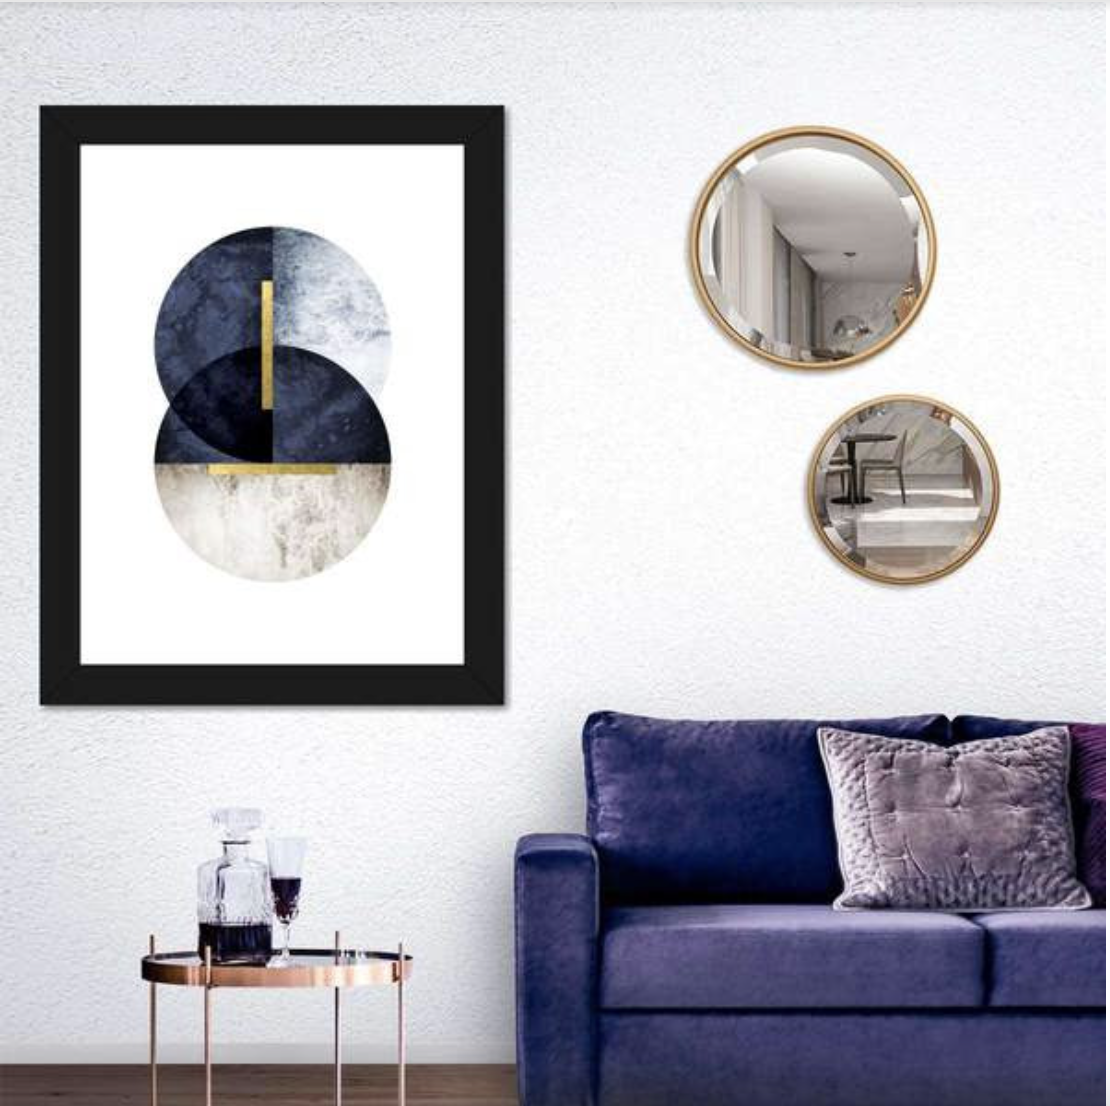 Ideas for Staircase Wall Decor That Will Stay for Years